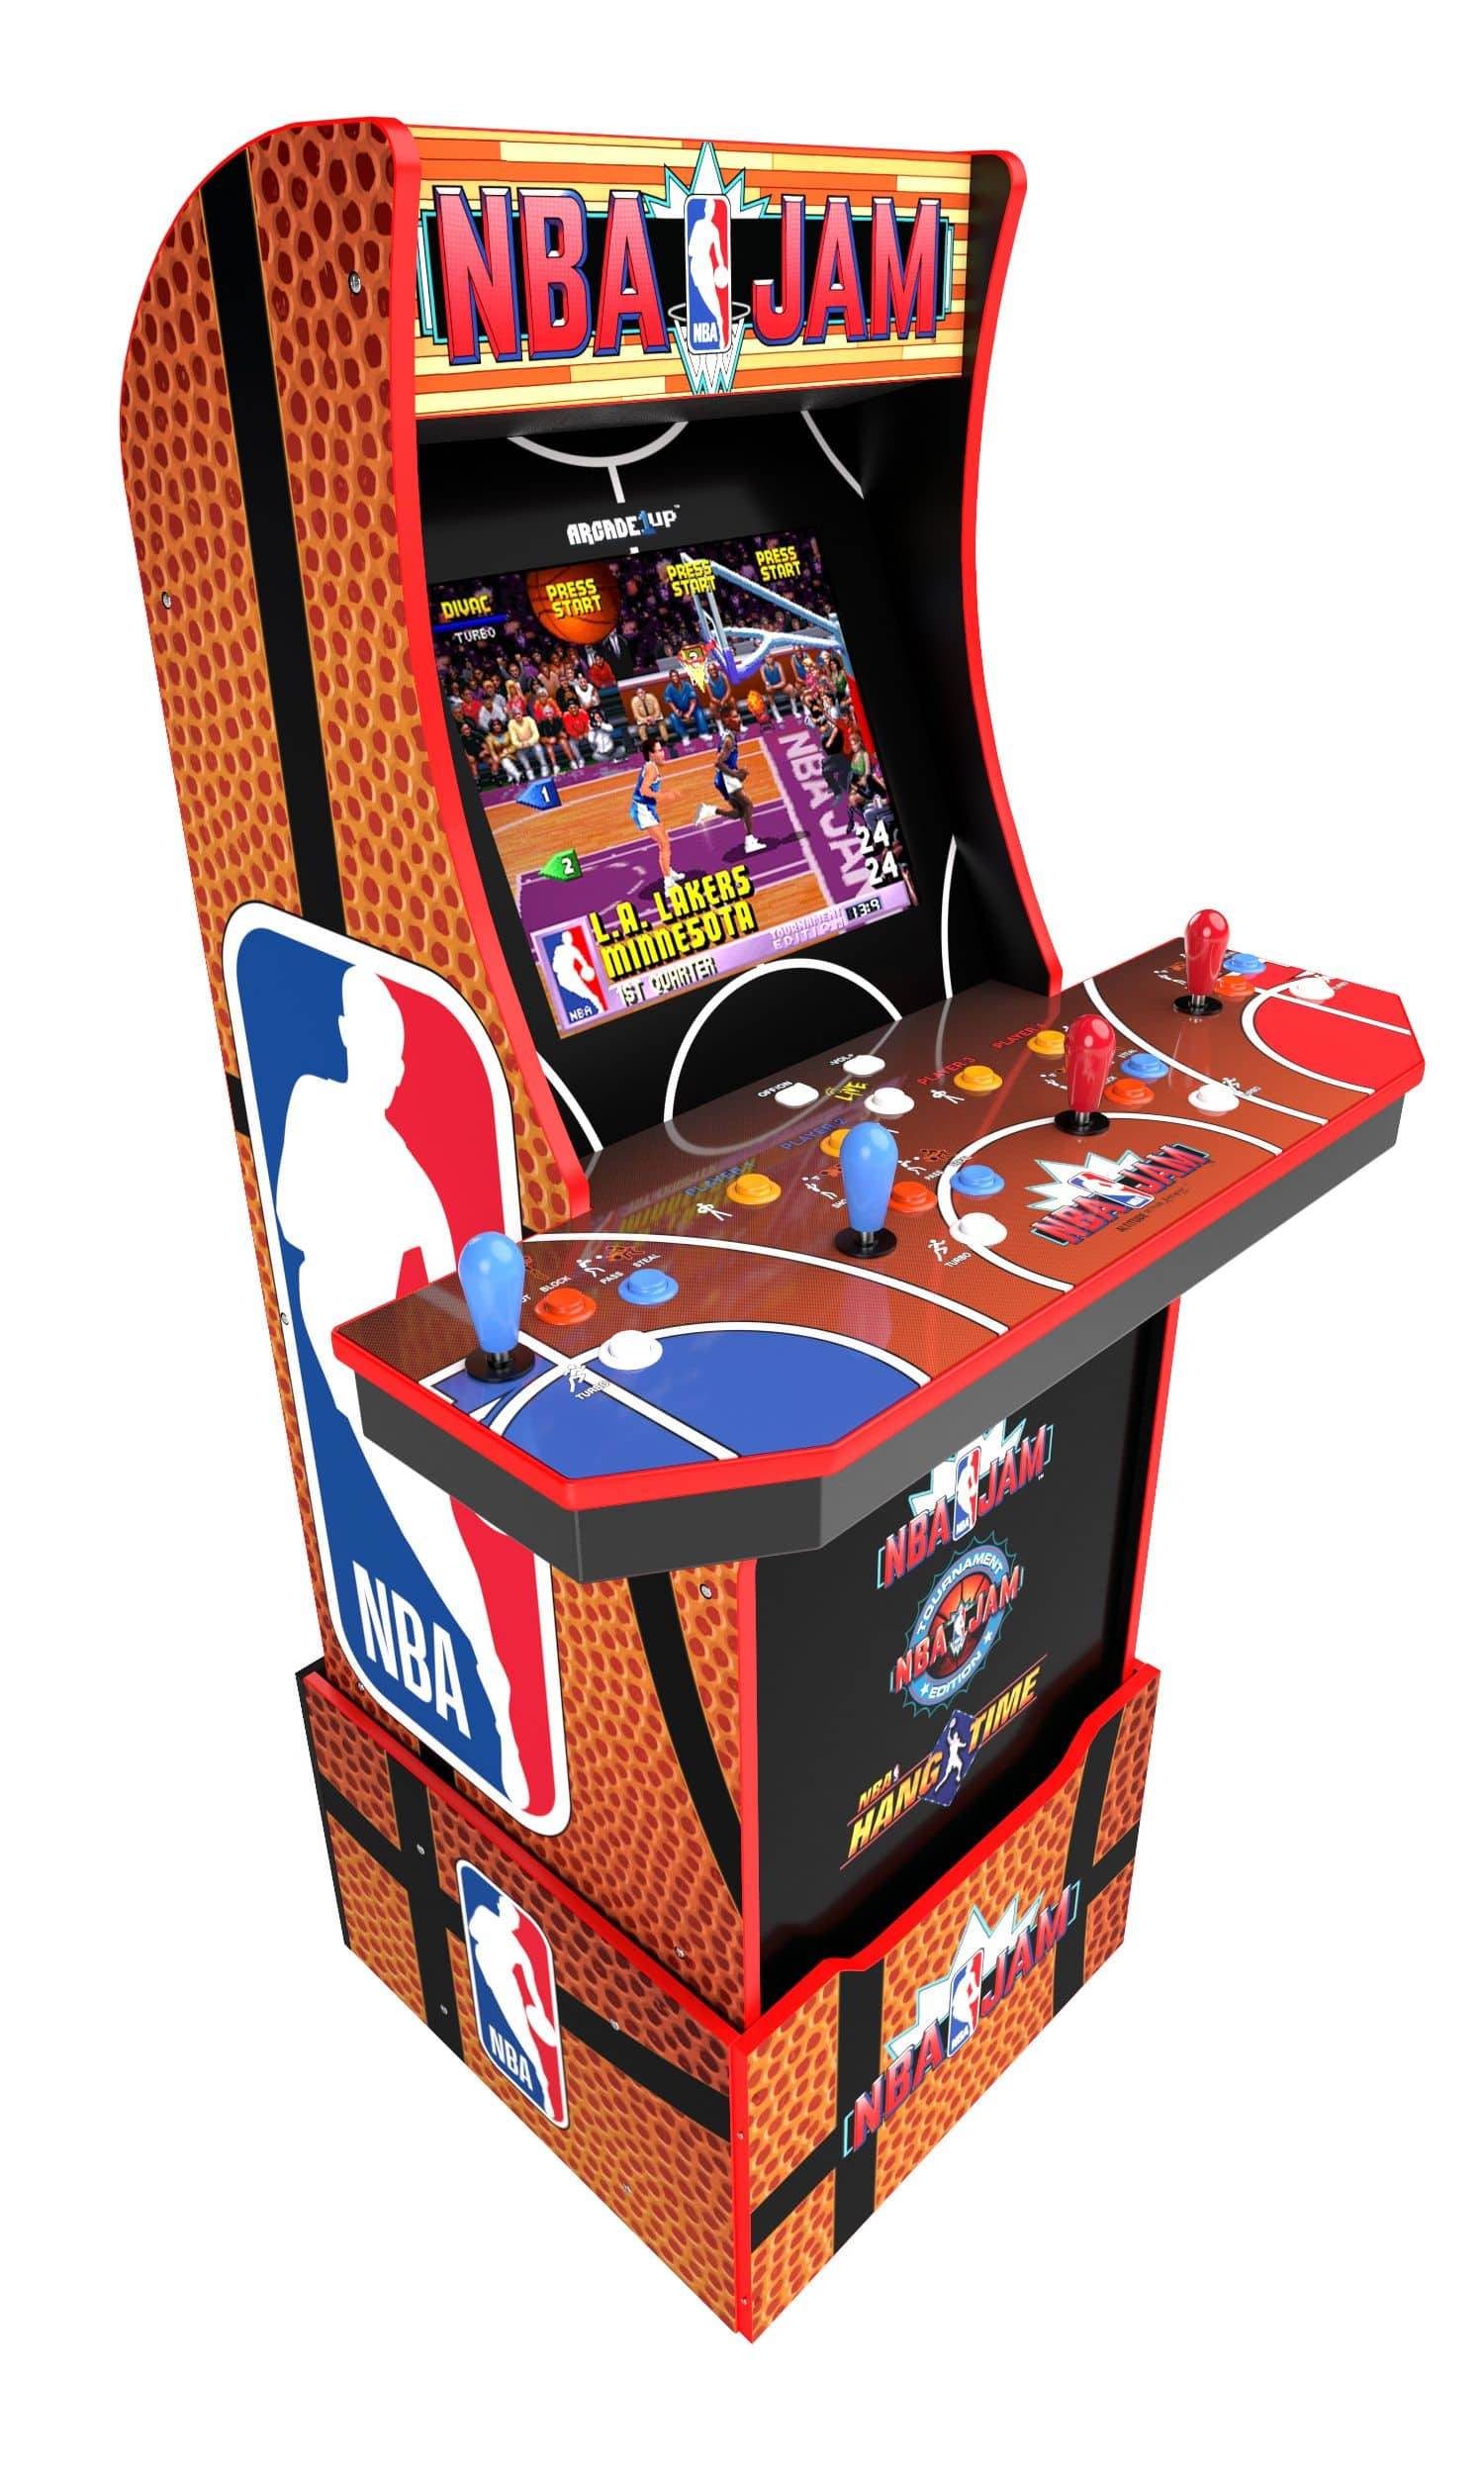 Arcade1up NBA Jam on clearance for $89 at some Walmarts $89.00